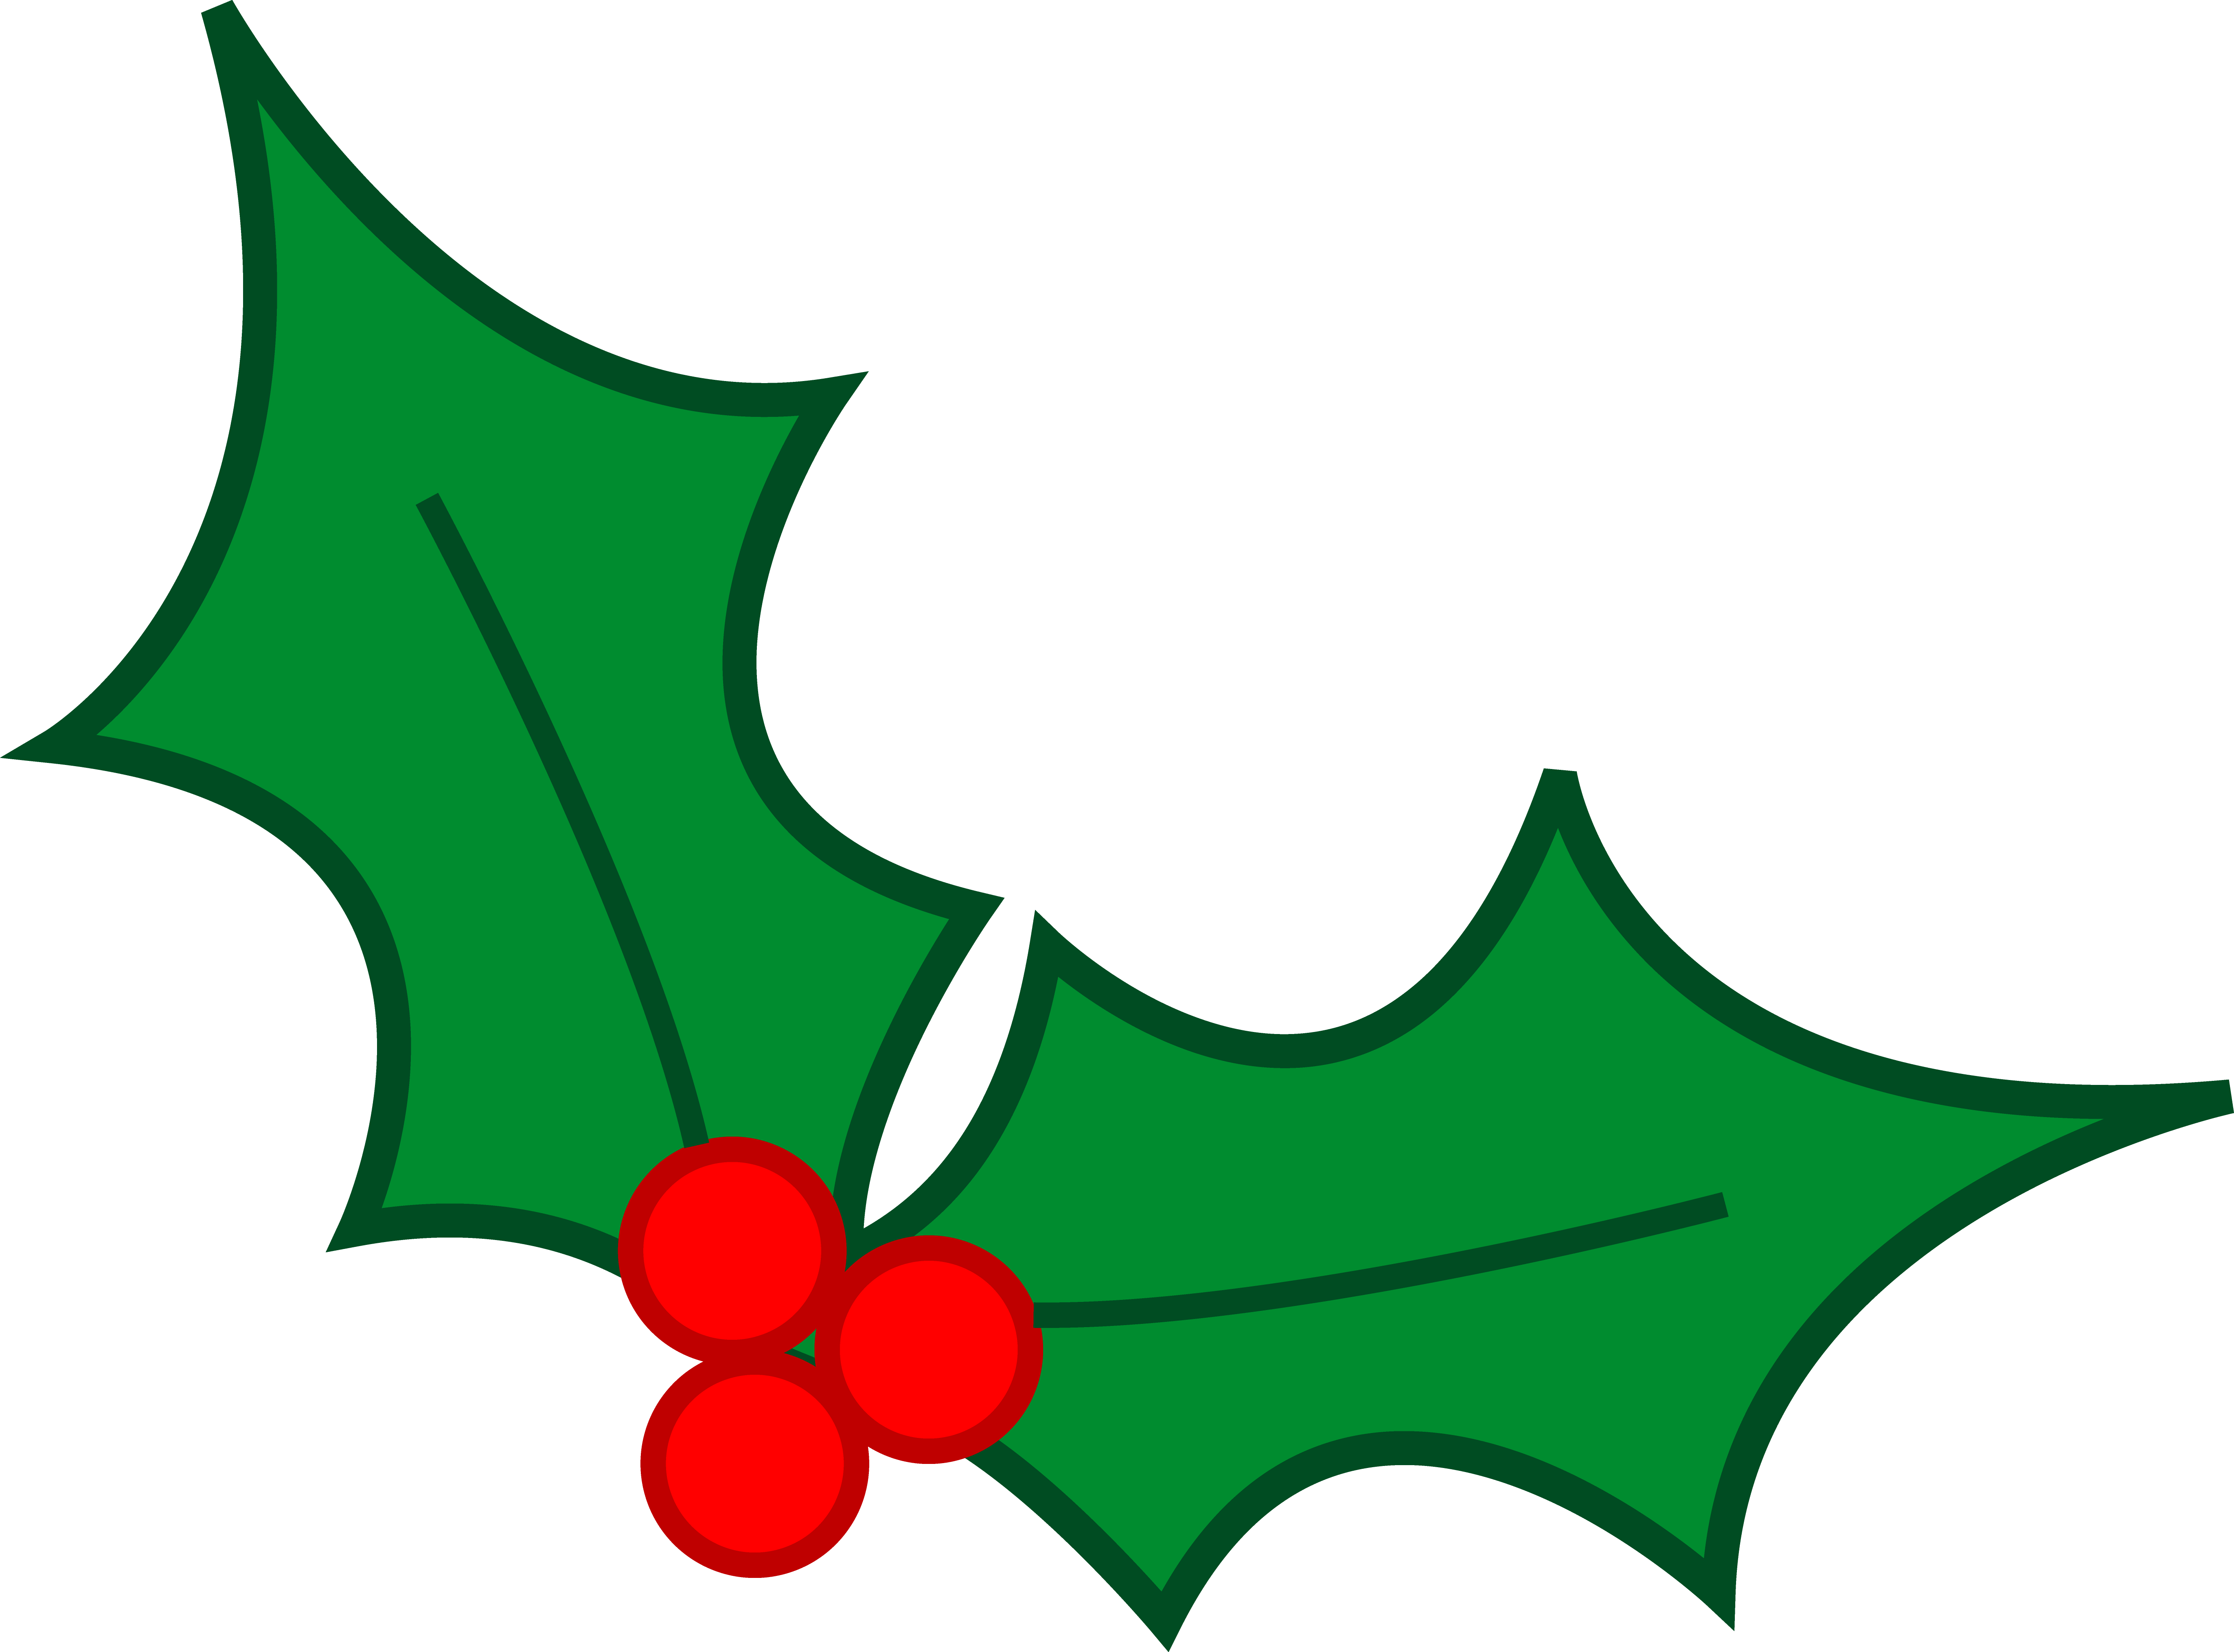 Christmas Holly Leaves Clip Art